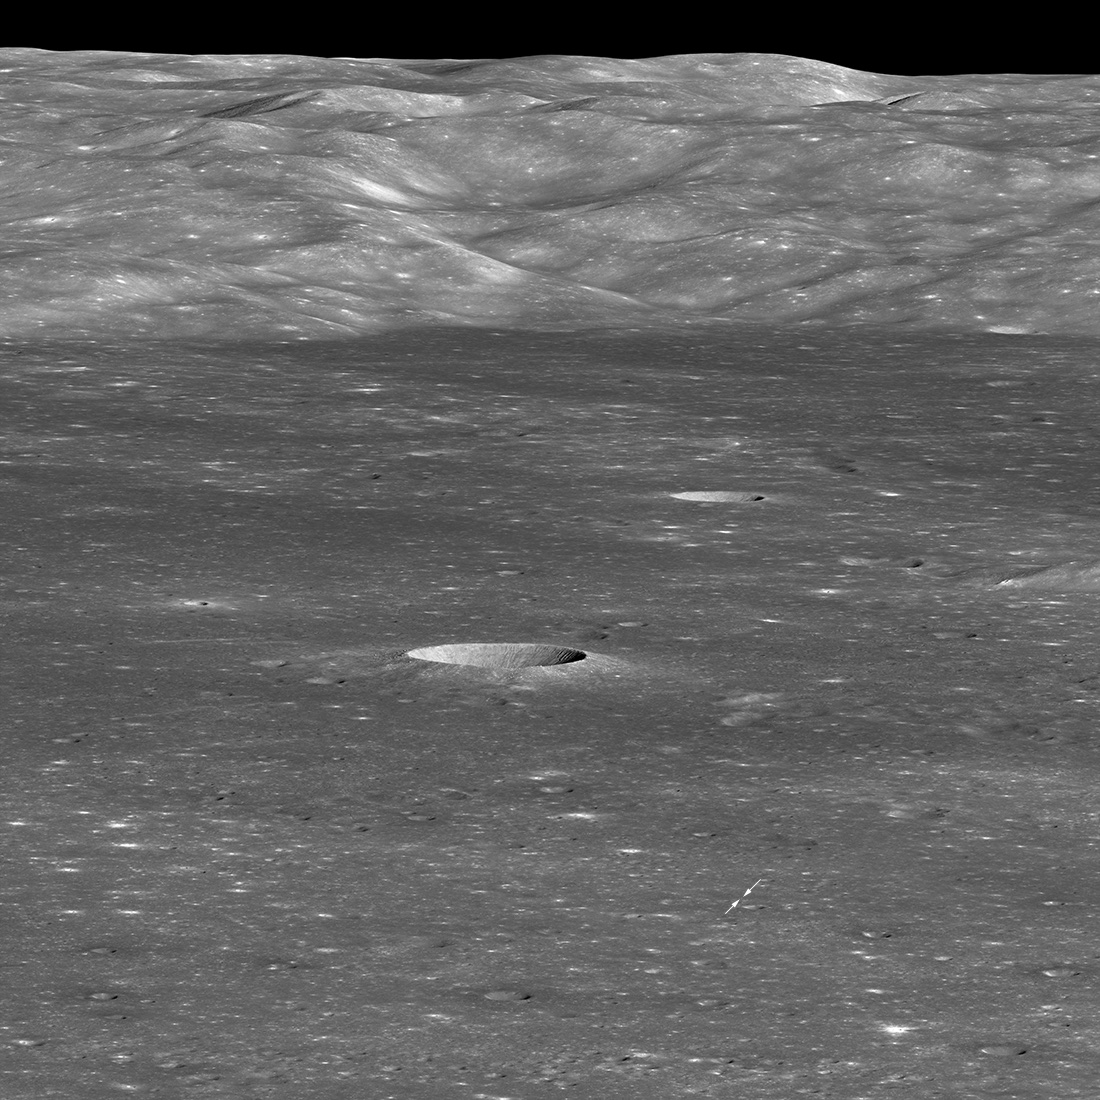 oblique view of large crater with arrows marking spot of landing